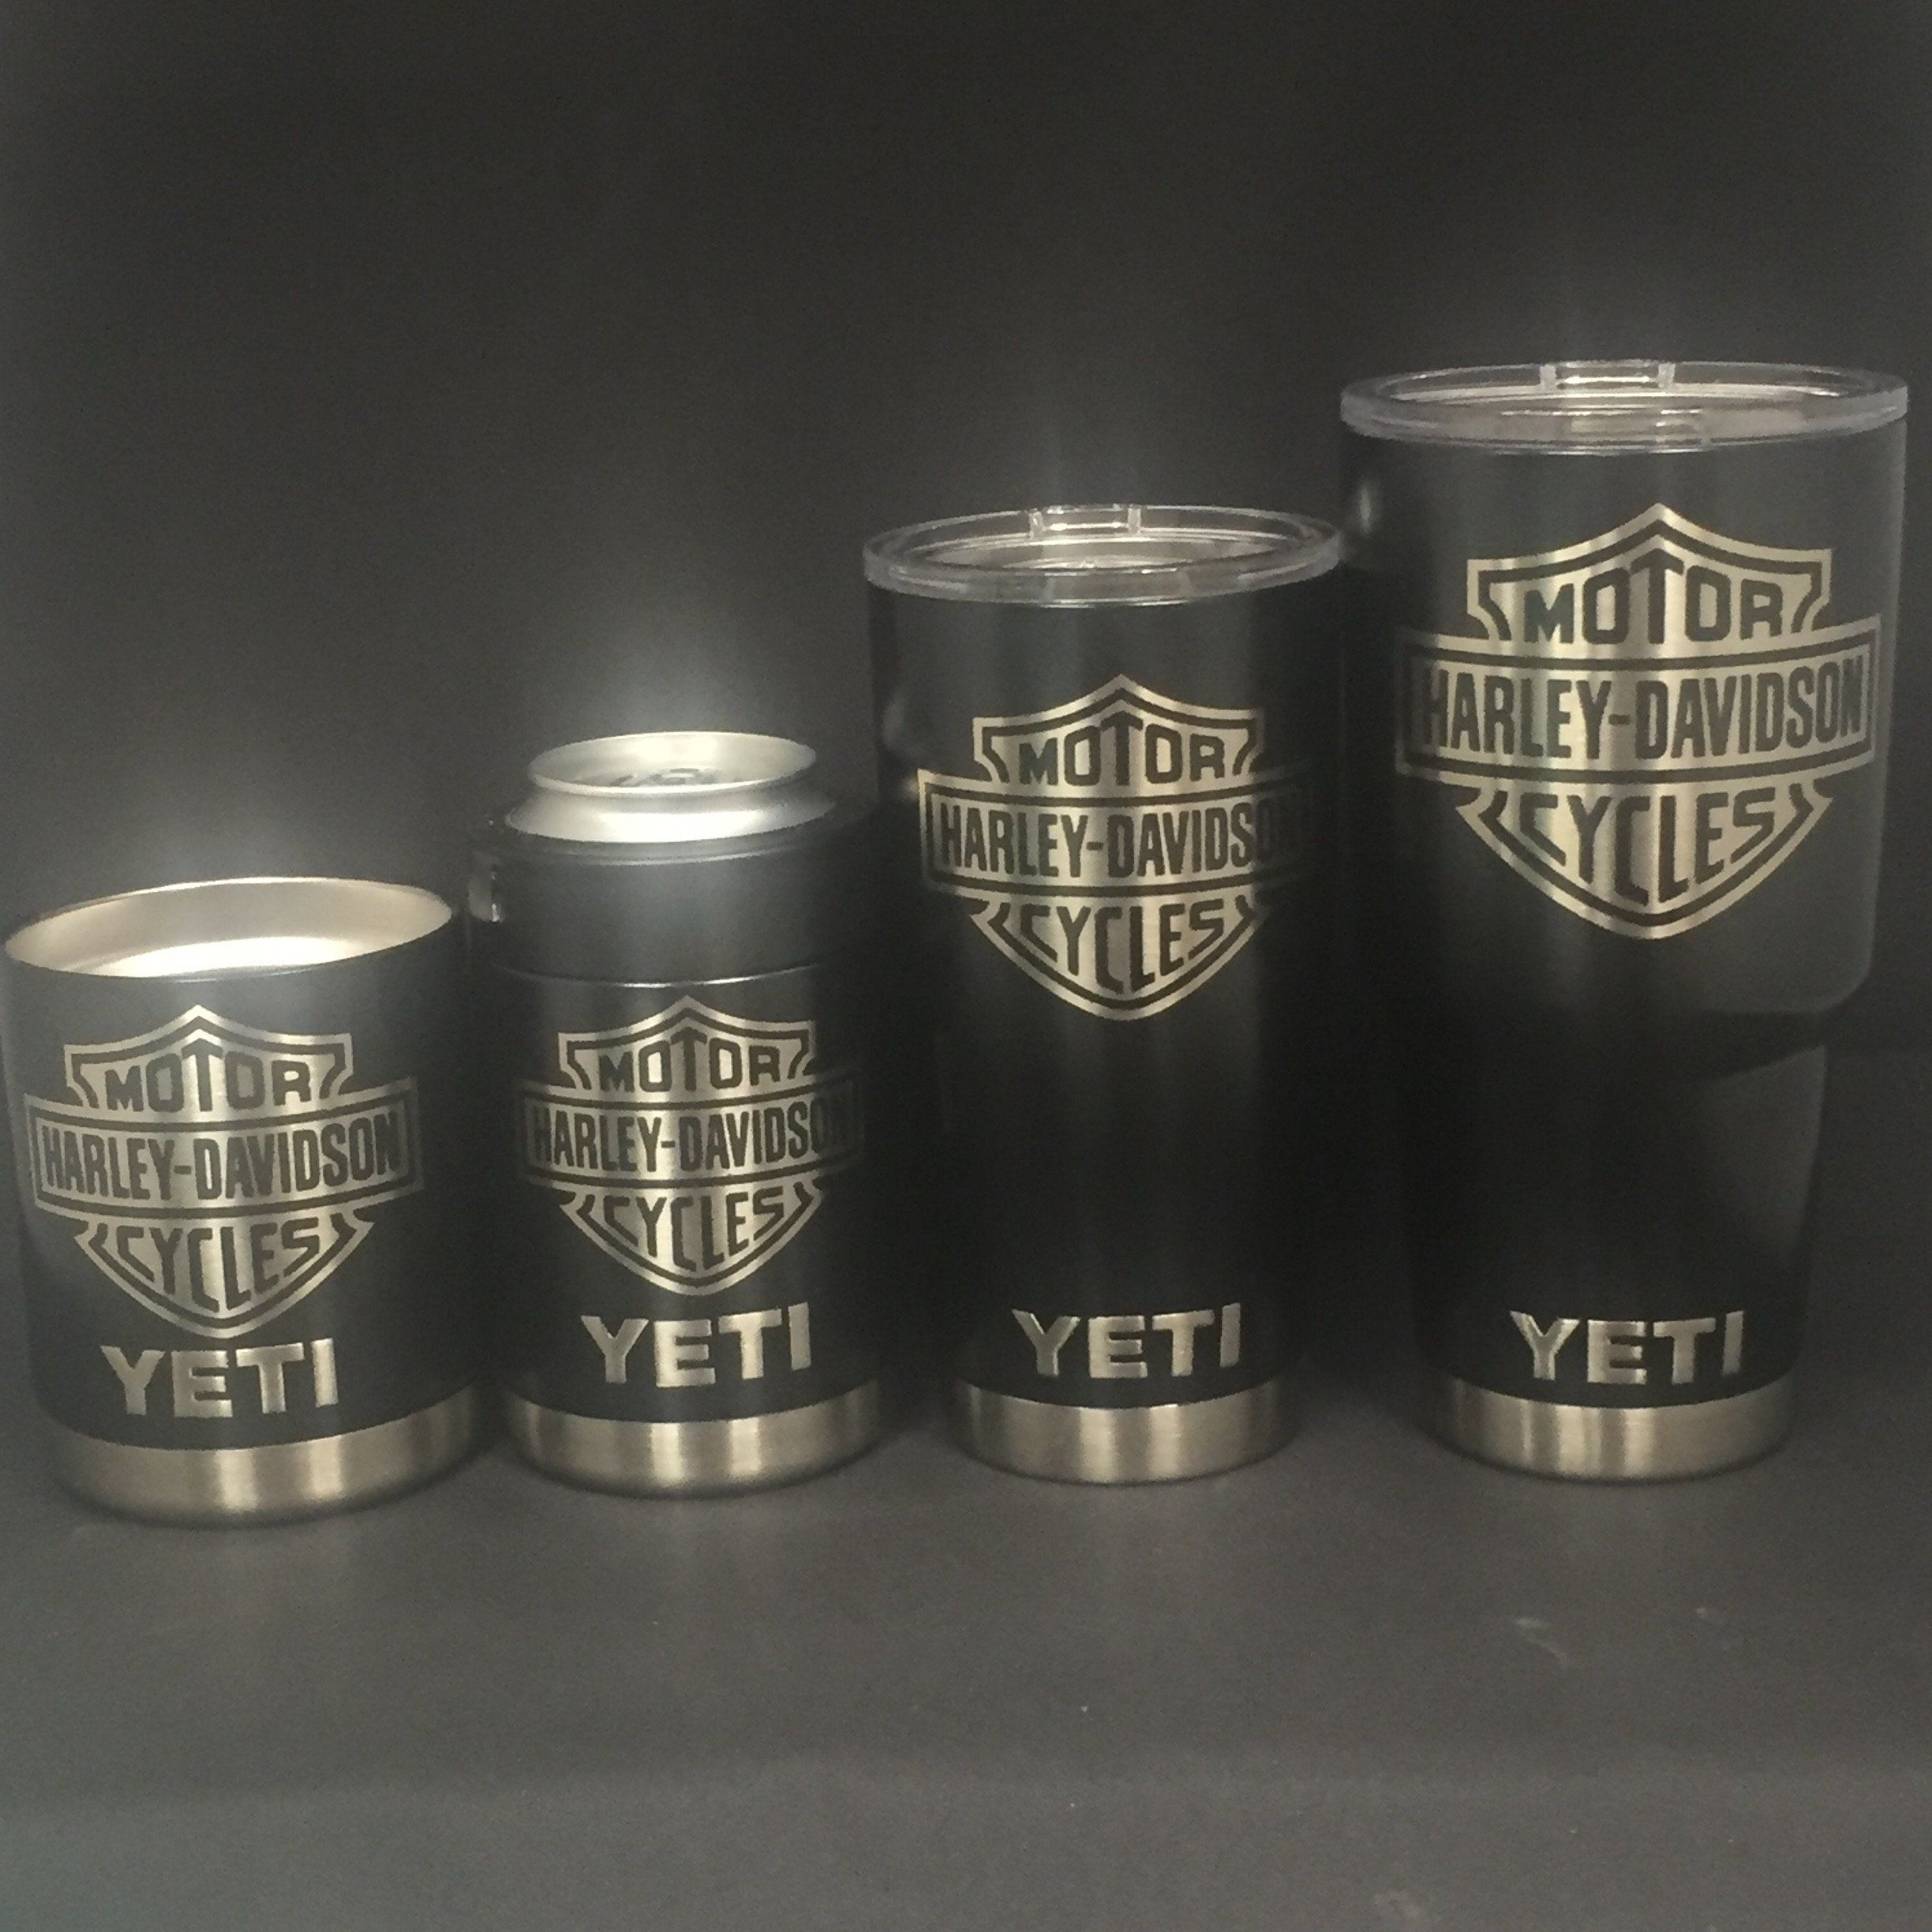 Harley Davidson Yeti Cup Rambler Tumbler Lowball Or Colster Leather Protectant